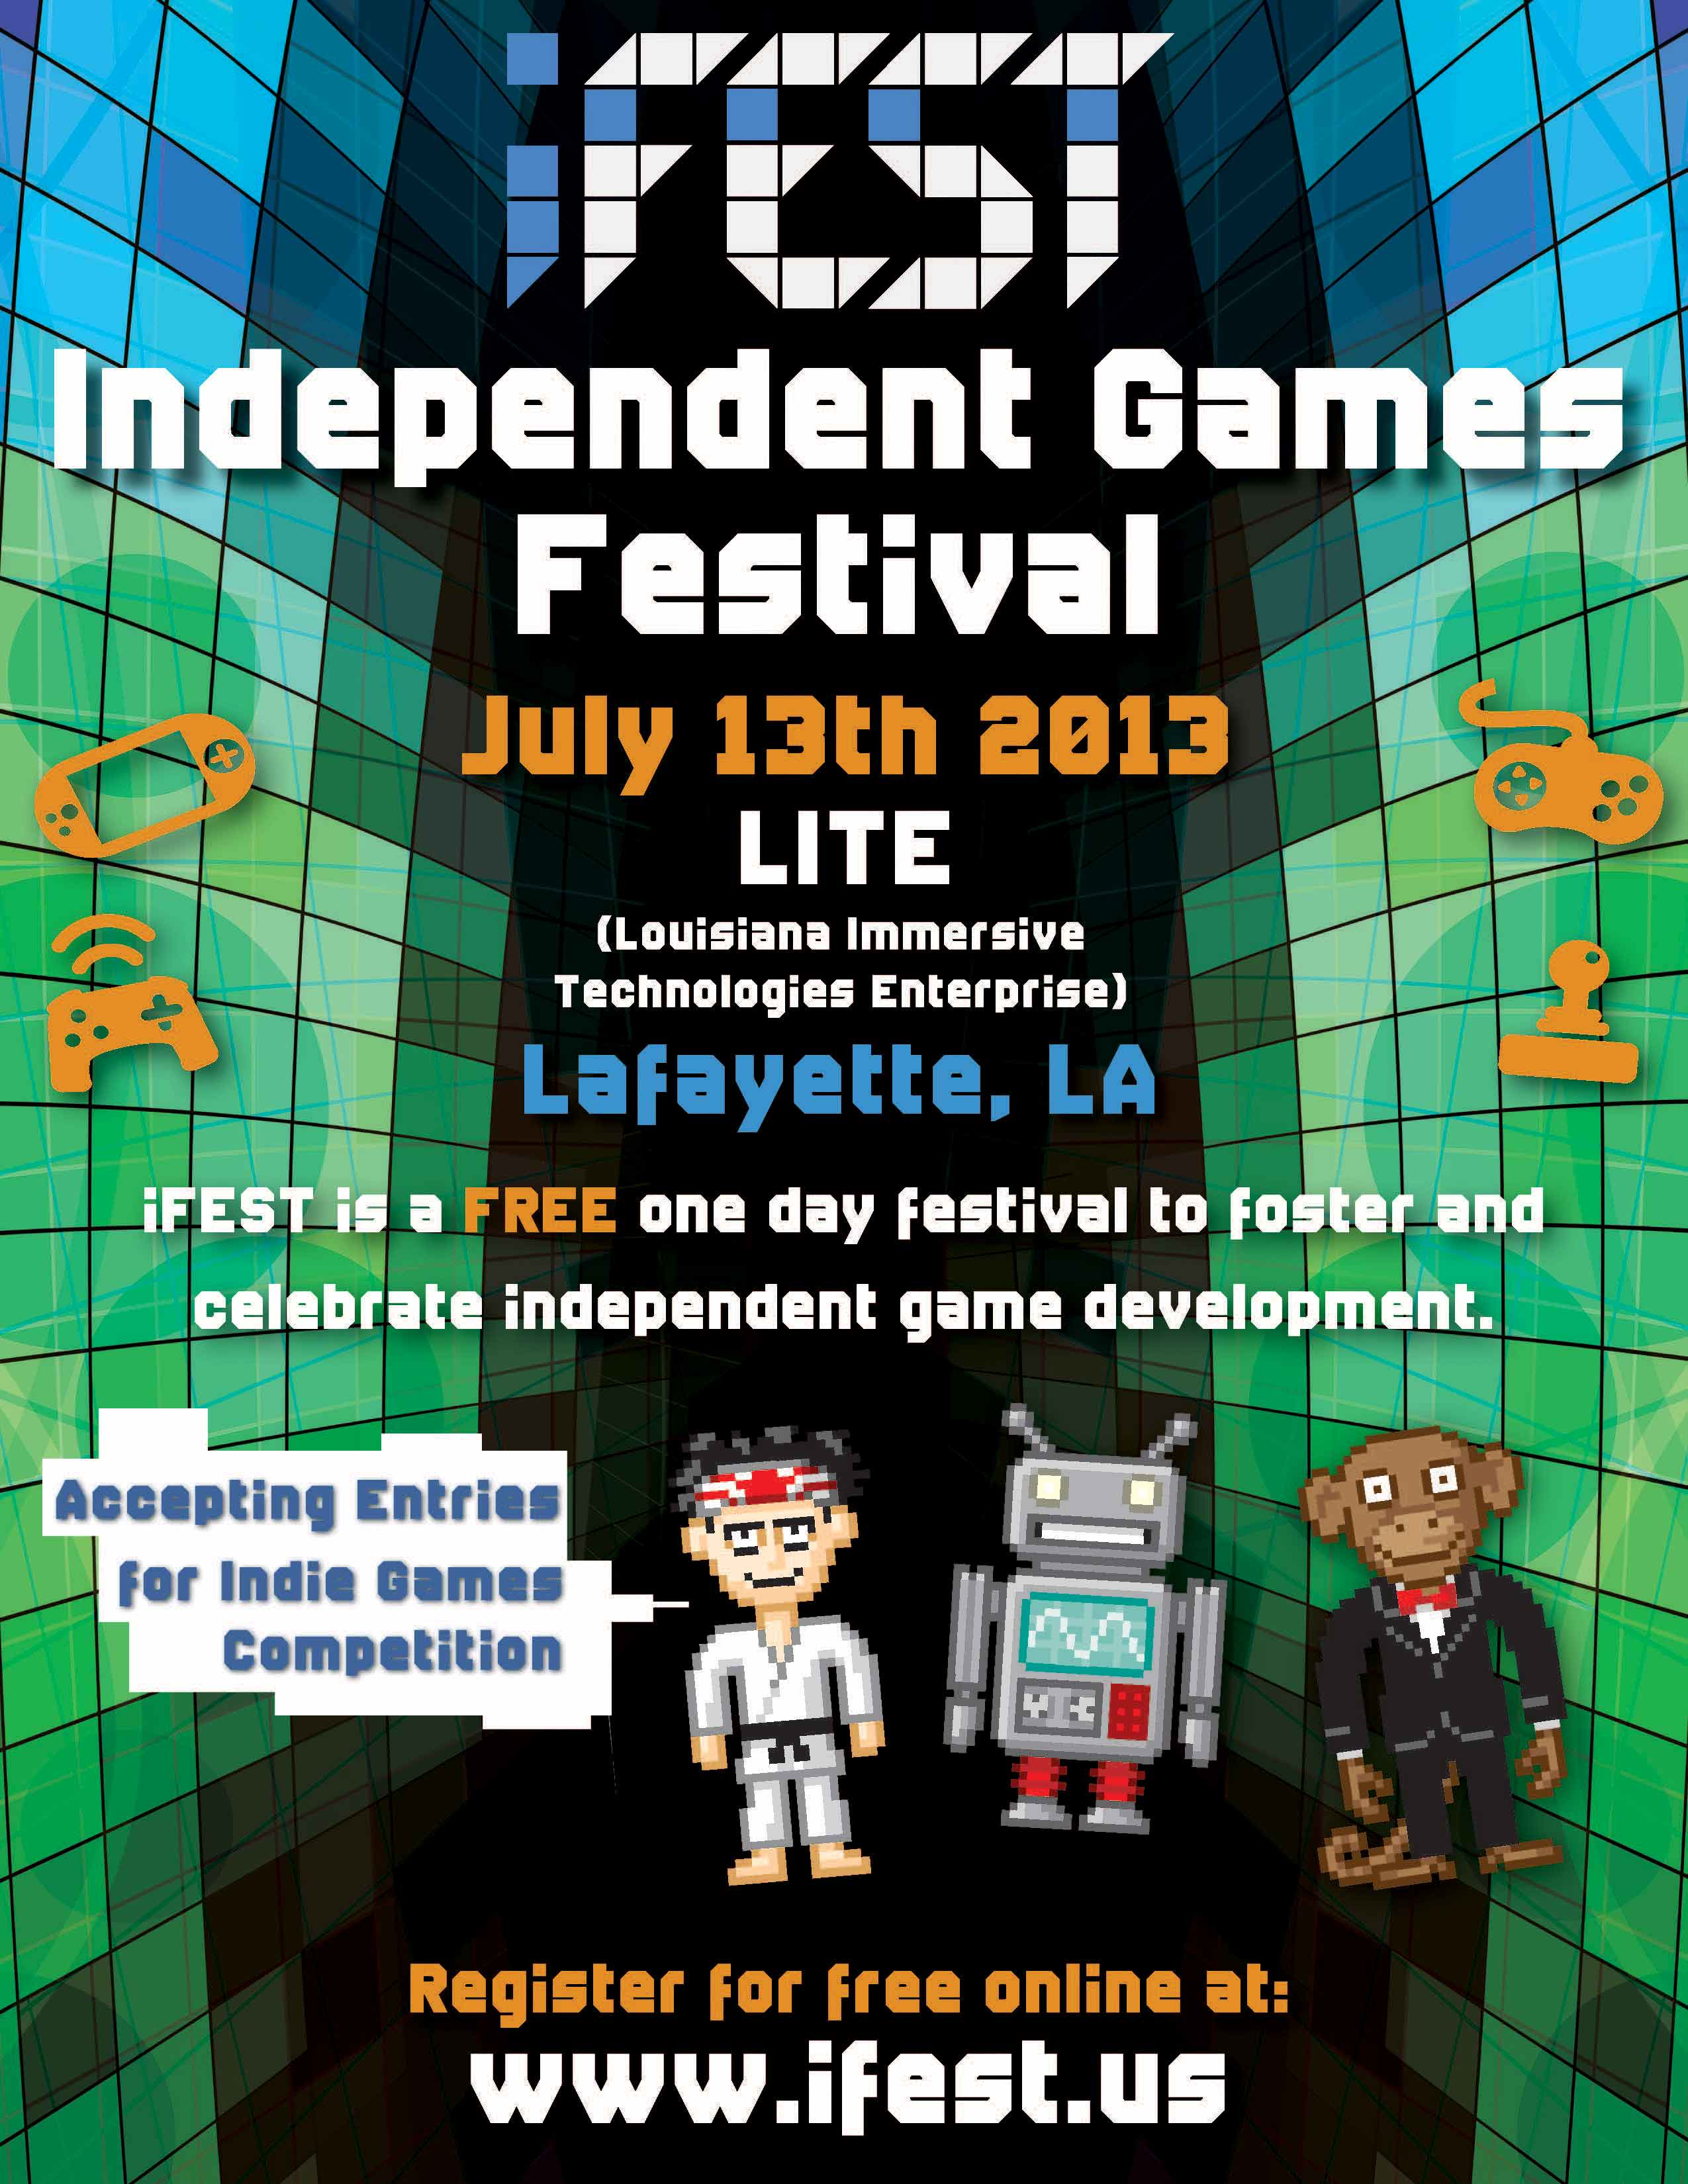 iFEST 2013 Flyer for Lafayette